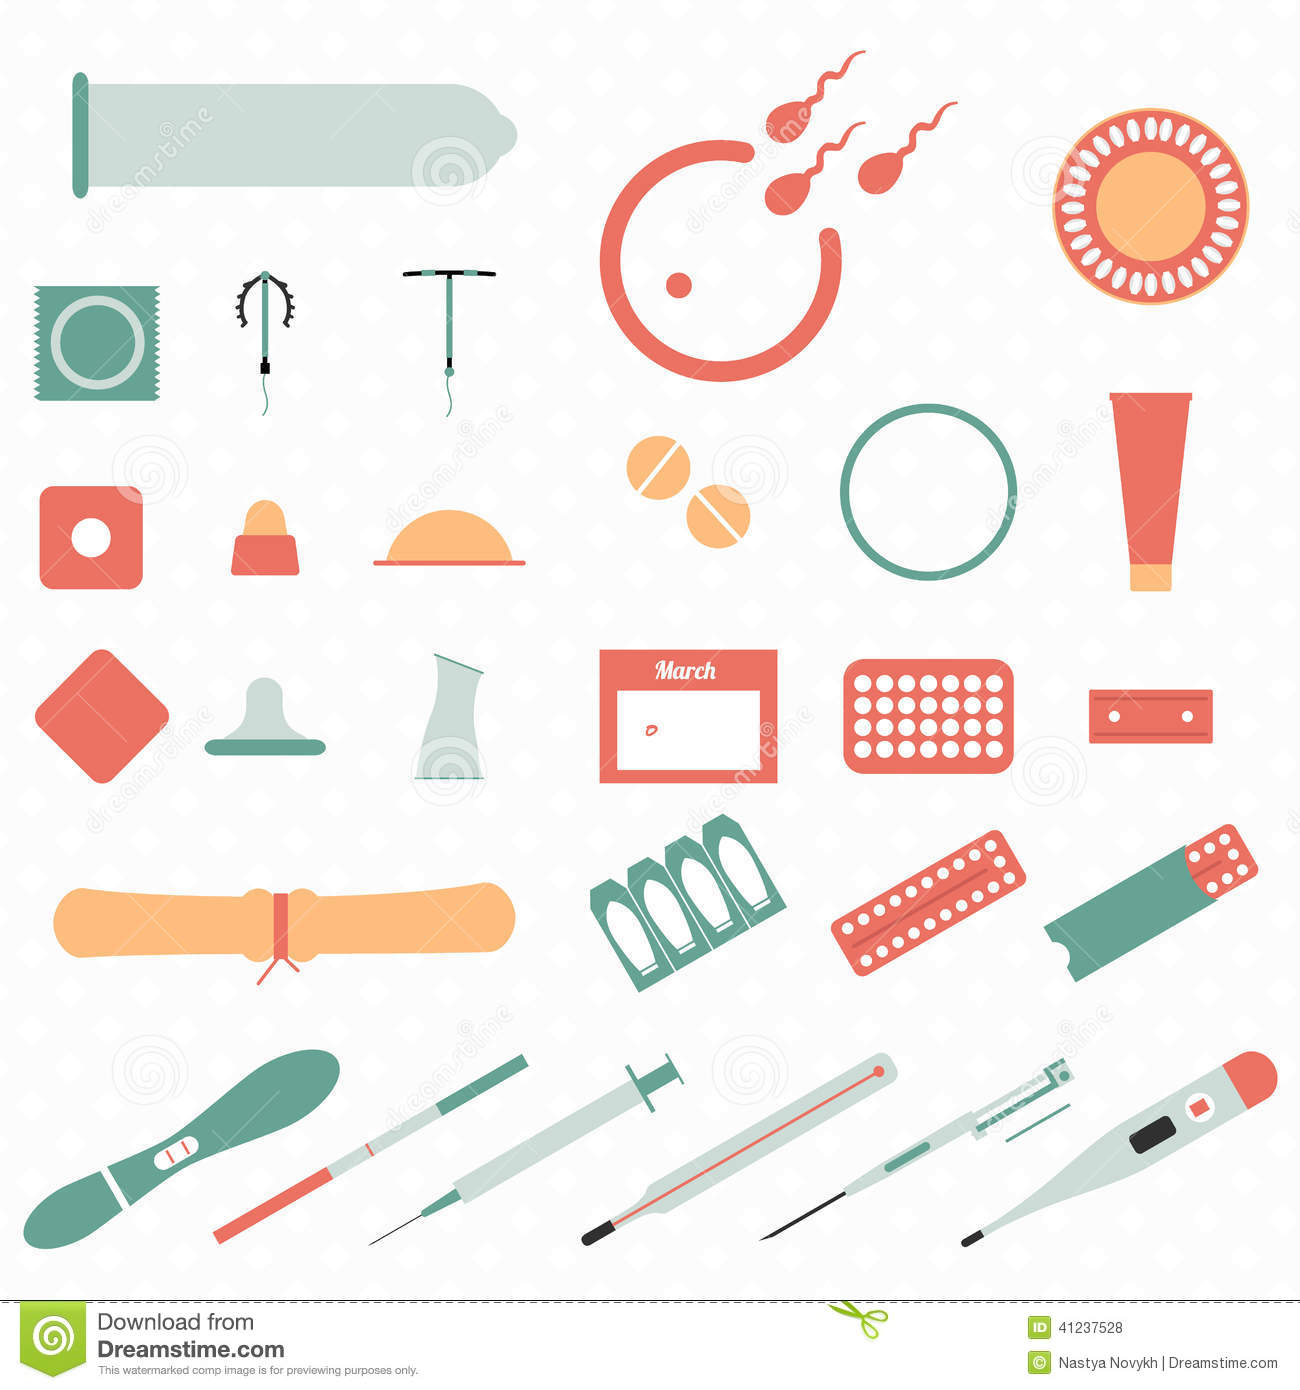 All Modern Types And Contraception Methods. Icons. Stock Vector ...: www.dreamstime.com/stock-illustration-all-modern-types...